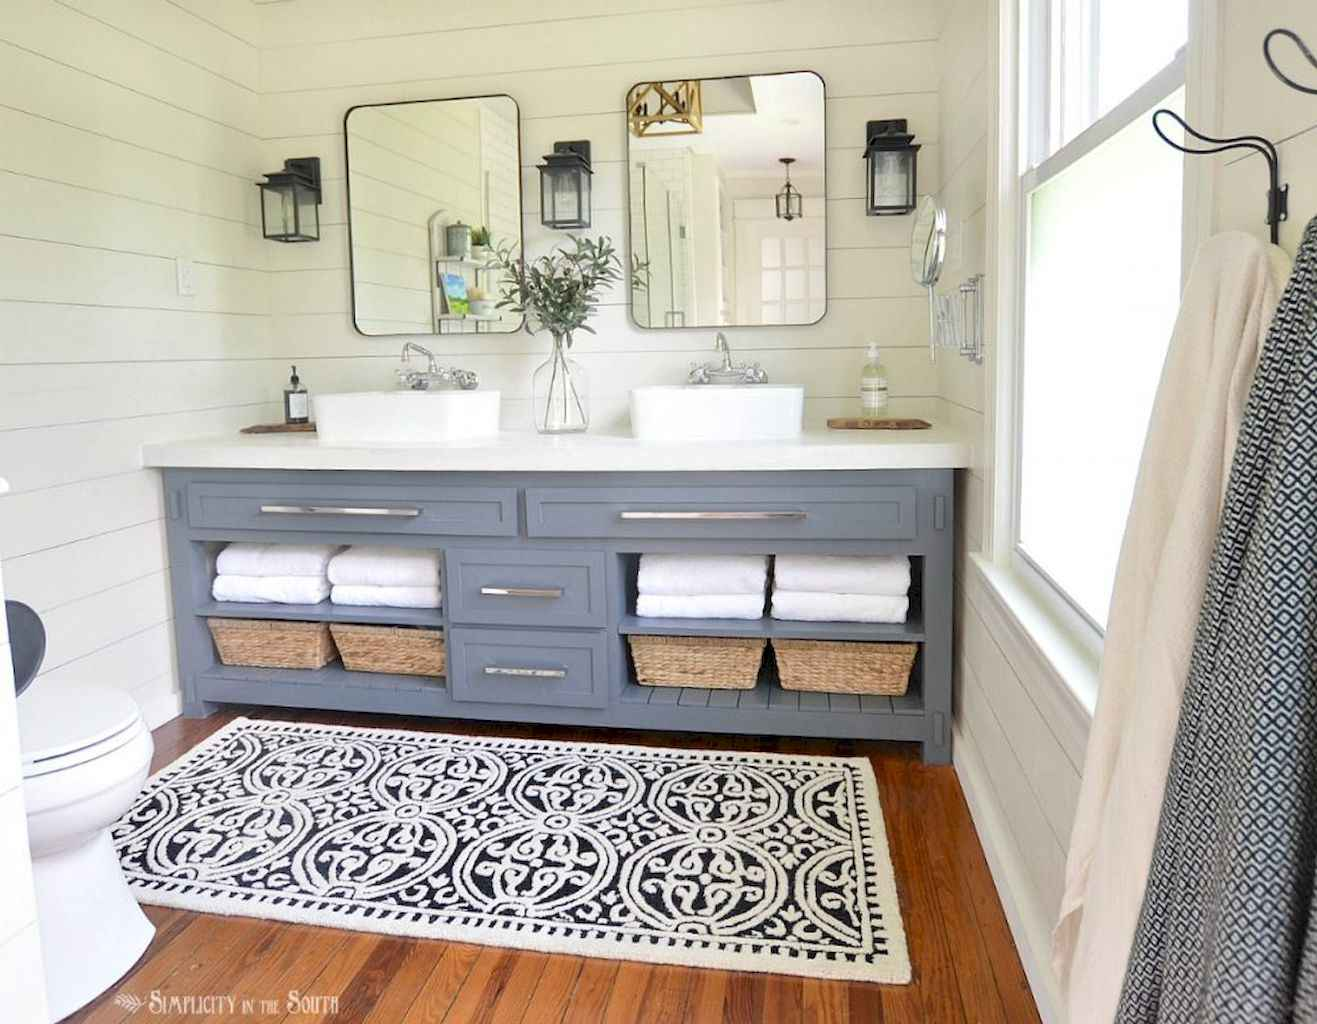 50 rustic farmhouse master bathroom remodel ideas 9 for Rustic farmhouse bathroom ideas